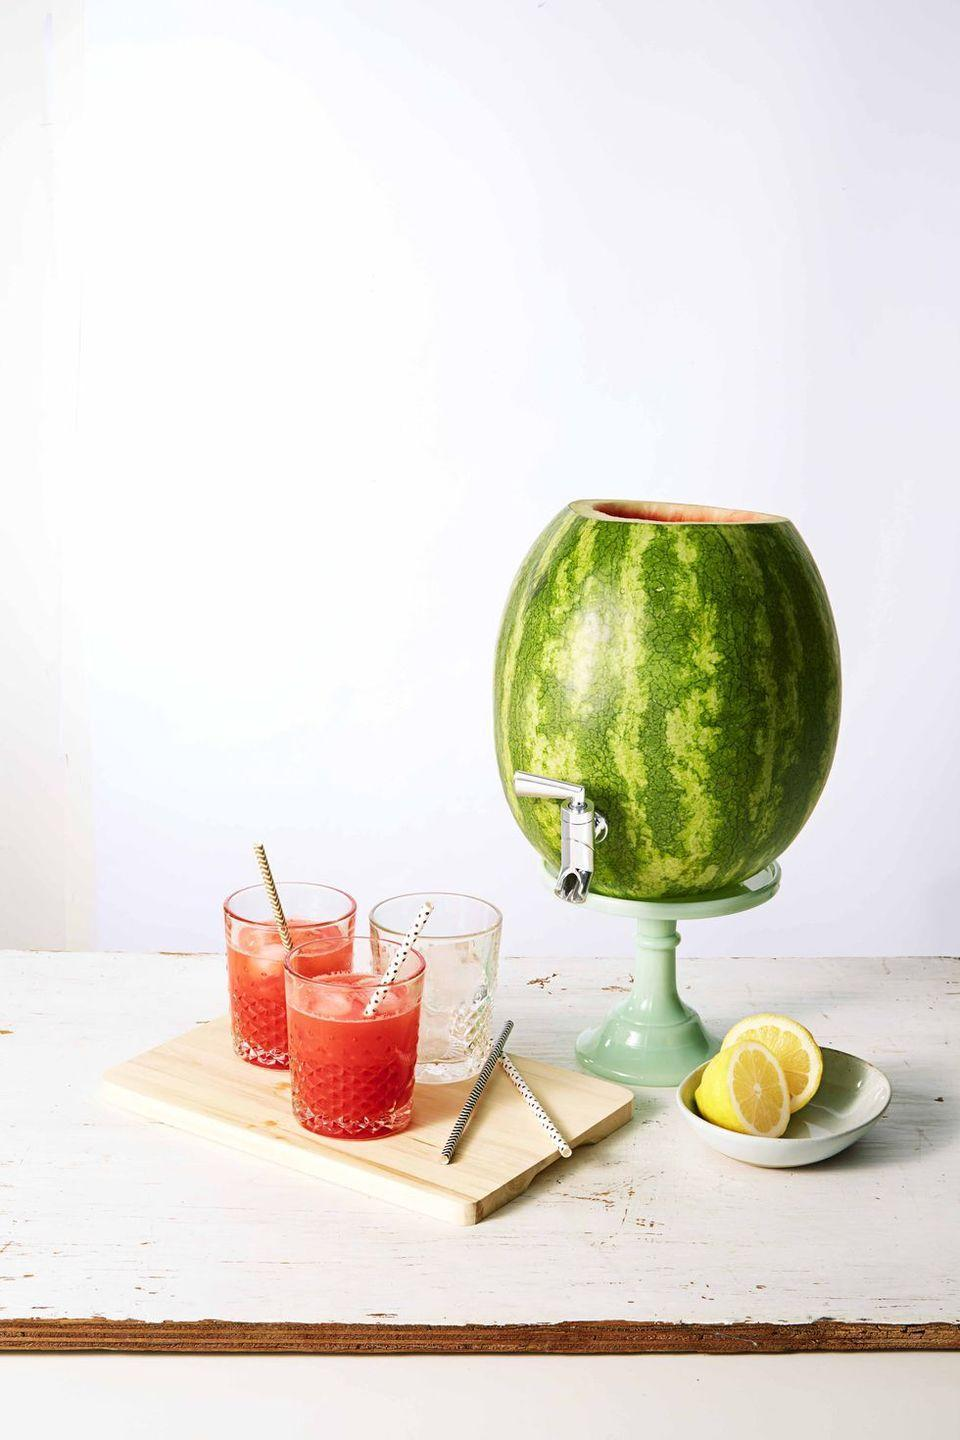 """<p>This keg is decoration and drink all in one: Once hollowed, add the drink of your choice — alcoholic or otherwise — and let party guests serve themselves. </p><p><em><a href=""""https://www.goodhousekeeping.com/food-recipes/how-to/a23788/how-to-make-a-watermelon-keg/"""" rel=""""nofollow noopener"""" target=""""_blank"""" data-ylk=""""slk:Get the tutorial for Watermelon Keg »"""" class=""""link rapid-noclick-resp"""">Get the tutorial for Watermelon Keg »</a></em></p><p><strong>RELATED:</strong> <a href=""""https://www.goodhousekeeping.com/holidays/tips/g3620/summer-party/"""" rel=""""nofollow noopener"""" target=""""_blank"""" data-ylk=""""slk:60 Genius Summer Party Ideas for Easy Entertaining"""" class=""""link rapid-noclick-resp"""">60 Genius Summer Party Ideas for Easy Entertaining</a><br></p>"""